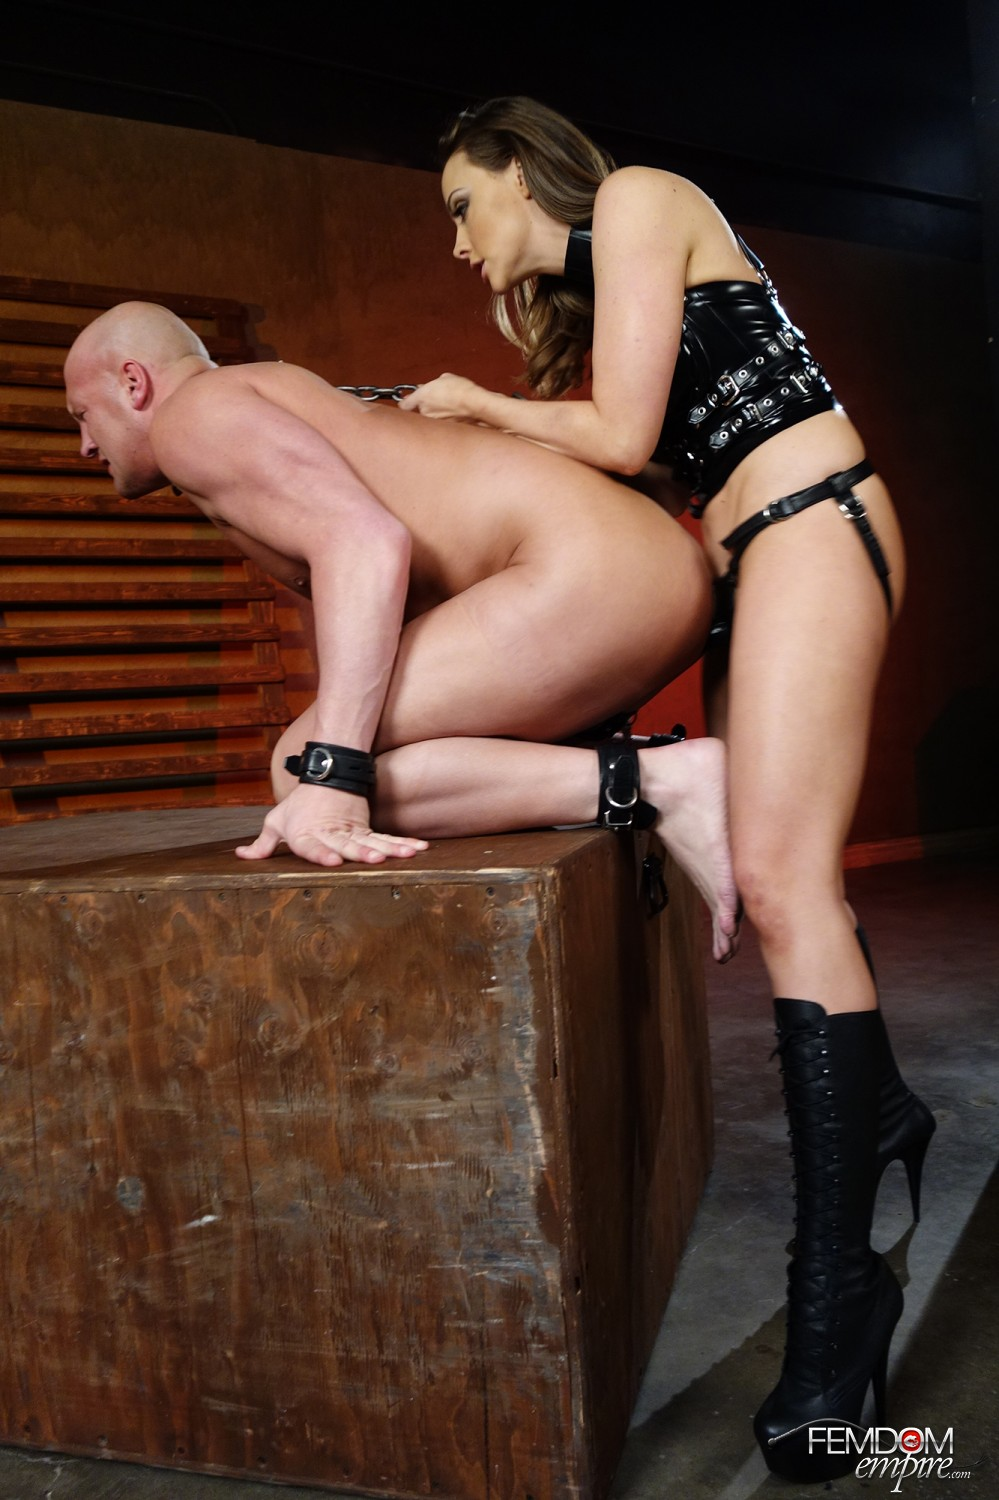 Mistress Chanel Preston luvs plowing her strapon fuckpole deep into her sub's arse.